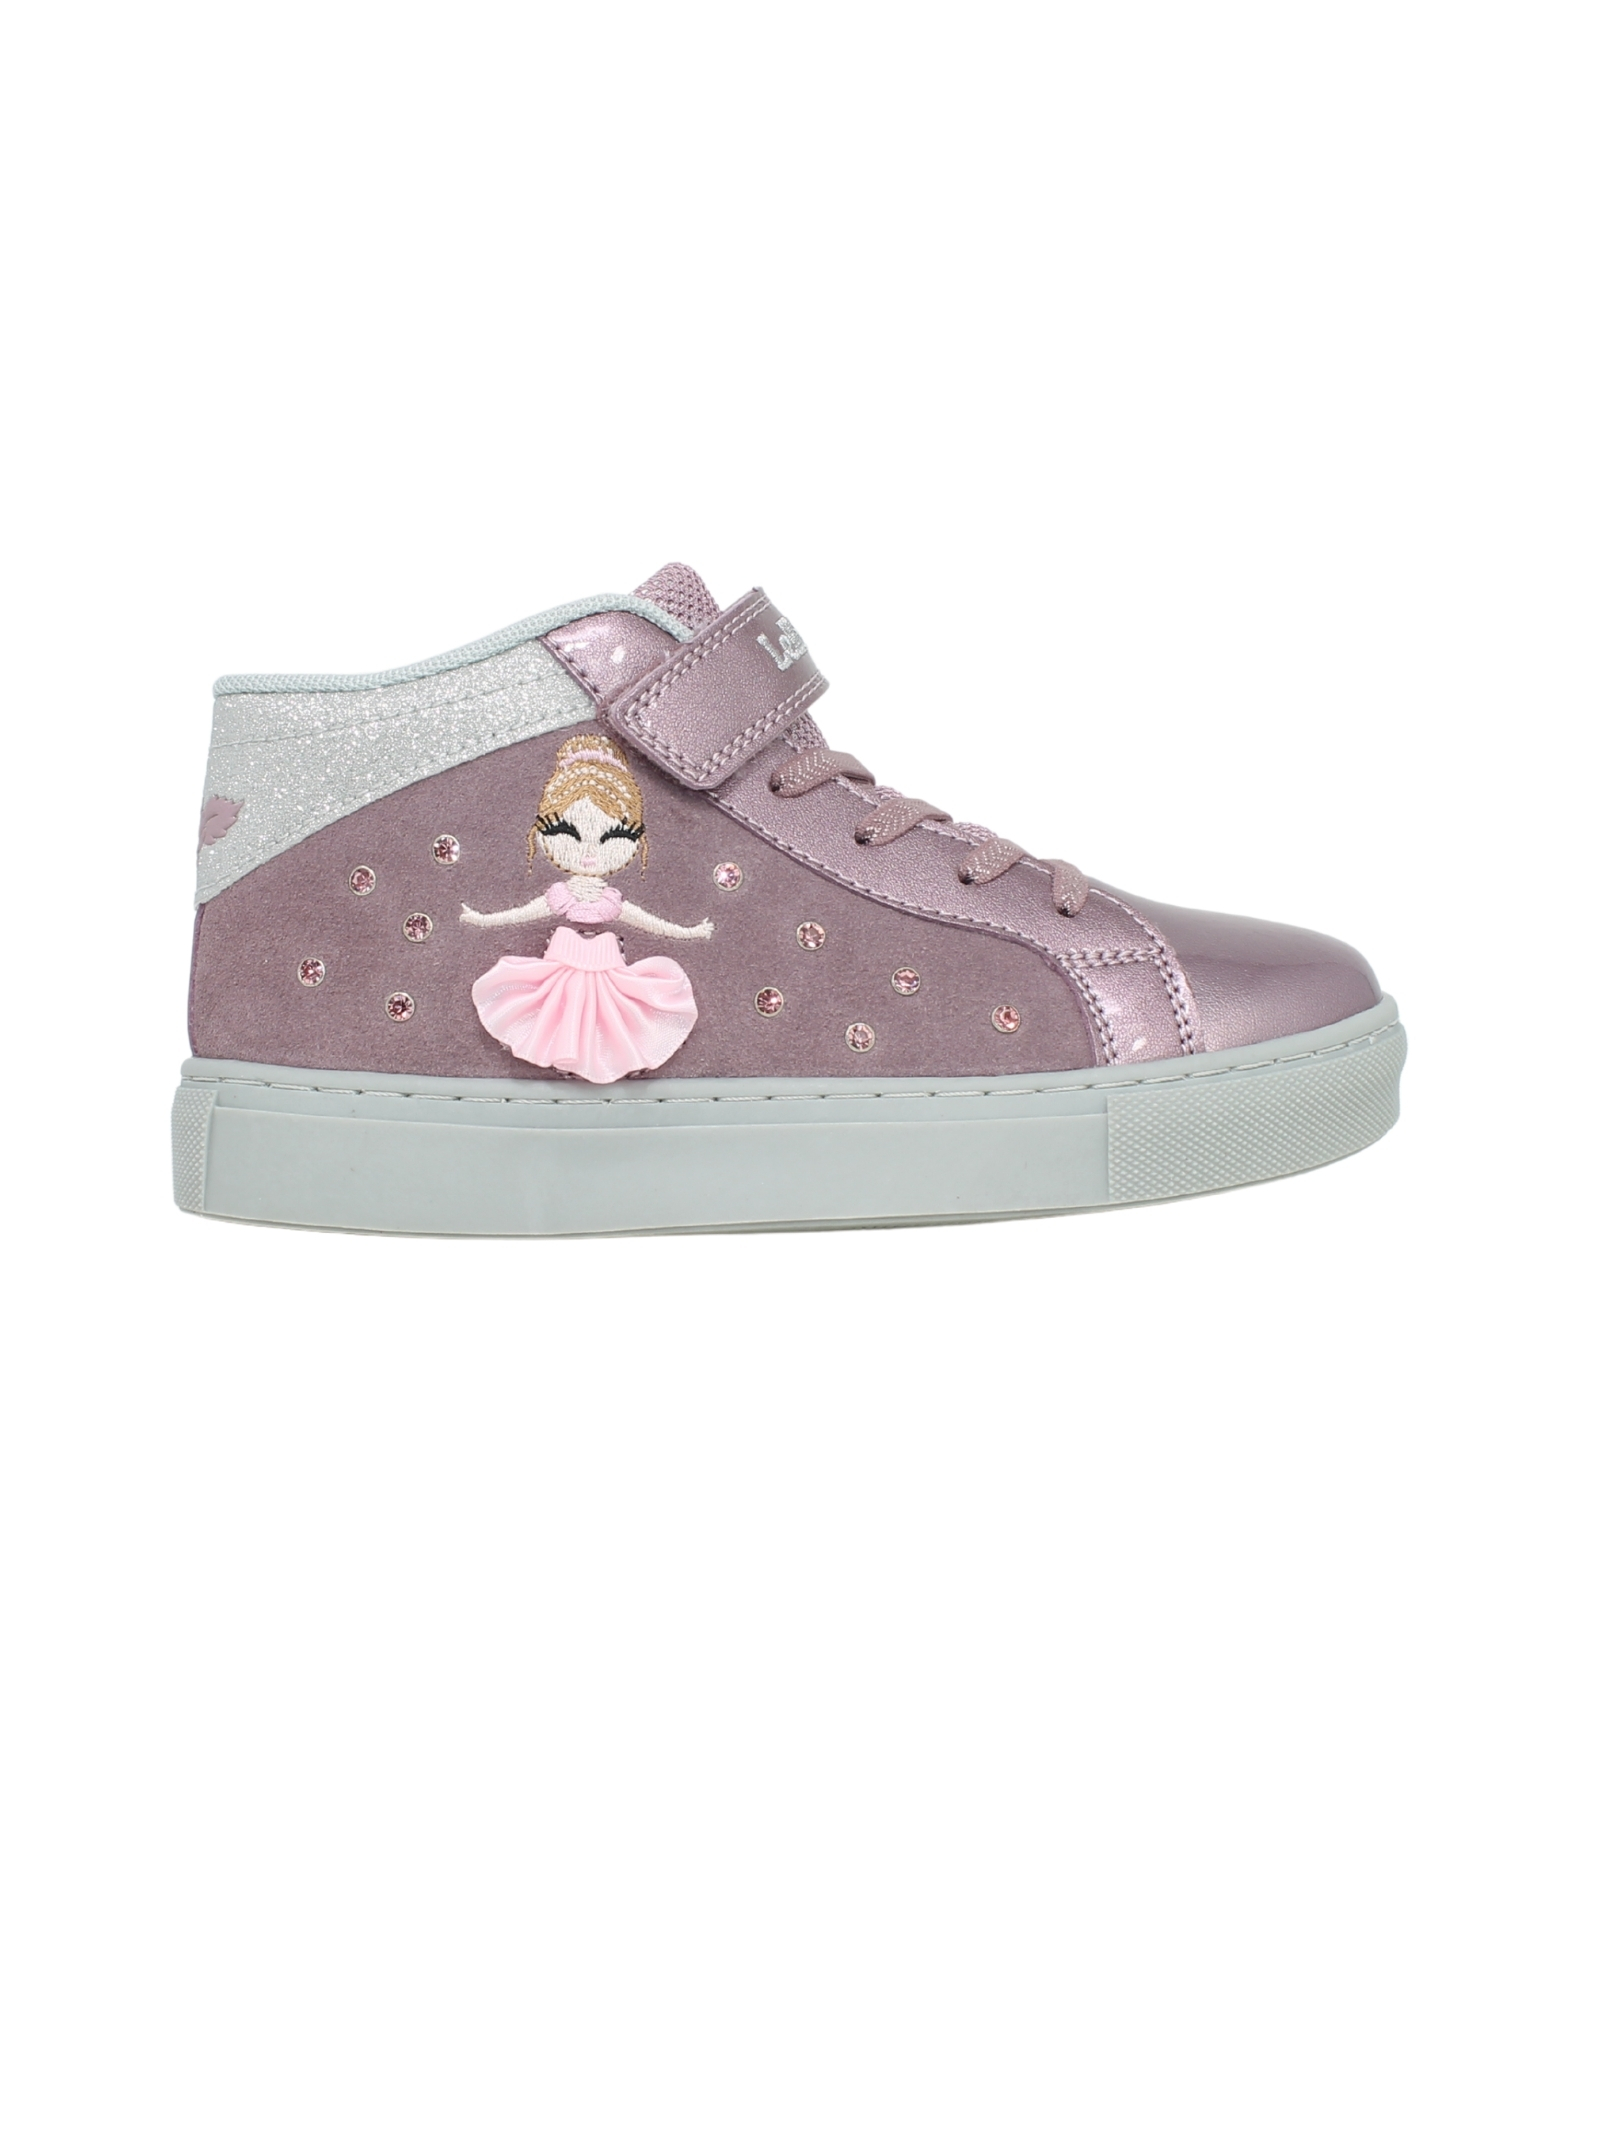 Sneakers Mille Stelle Rosa Bambina LELLI KELLY | Sneakers | LK4836CIPRIA